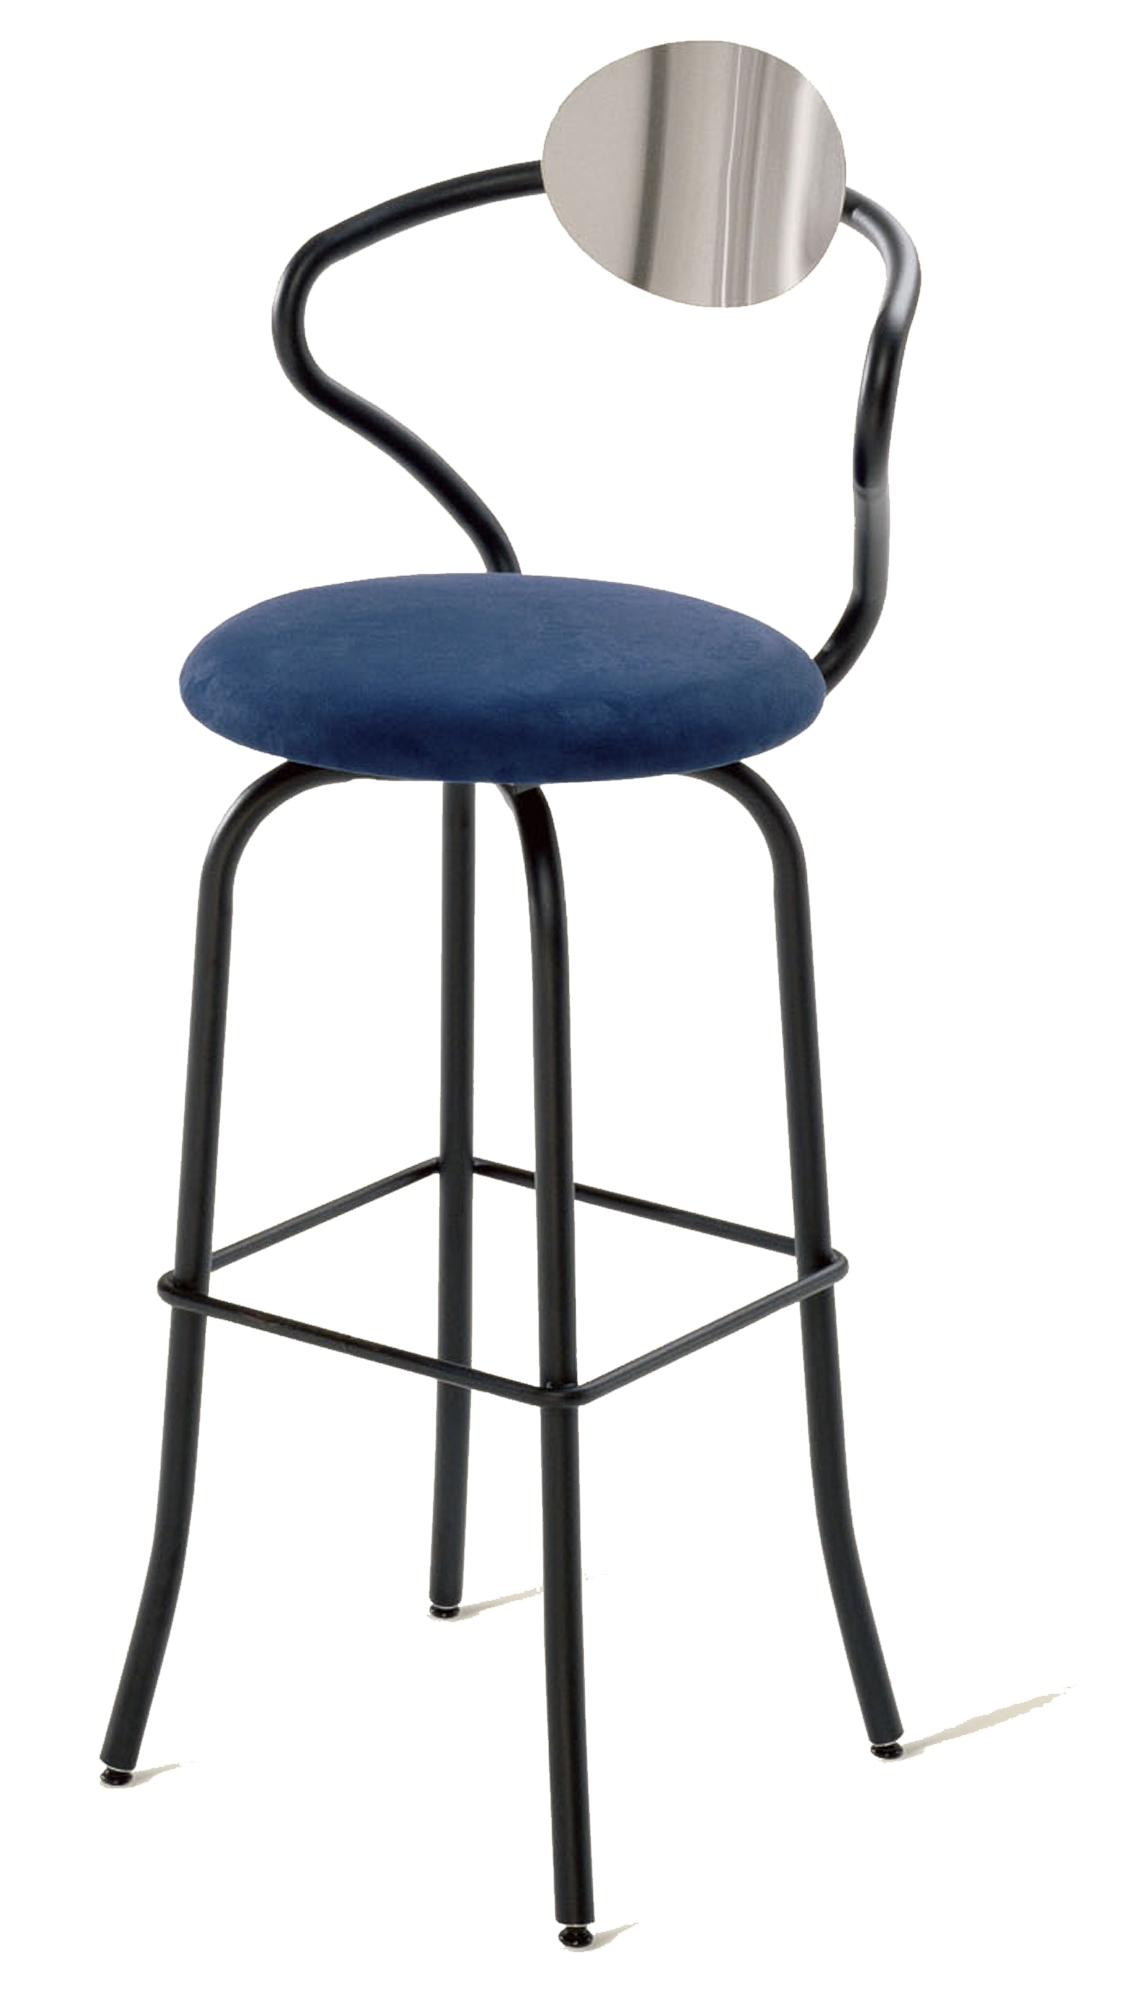 Home And Bedroom Furniture Adds Amisco Bar Stools And